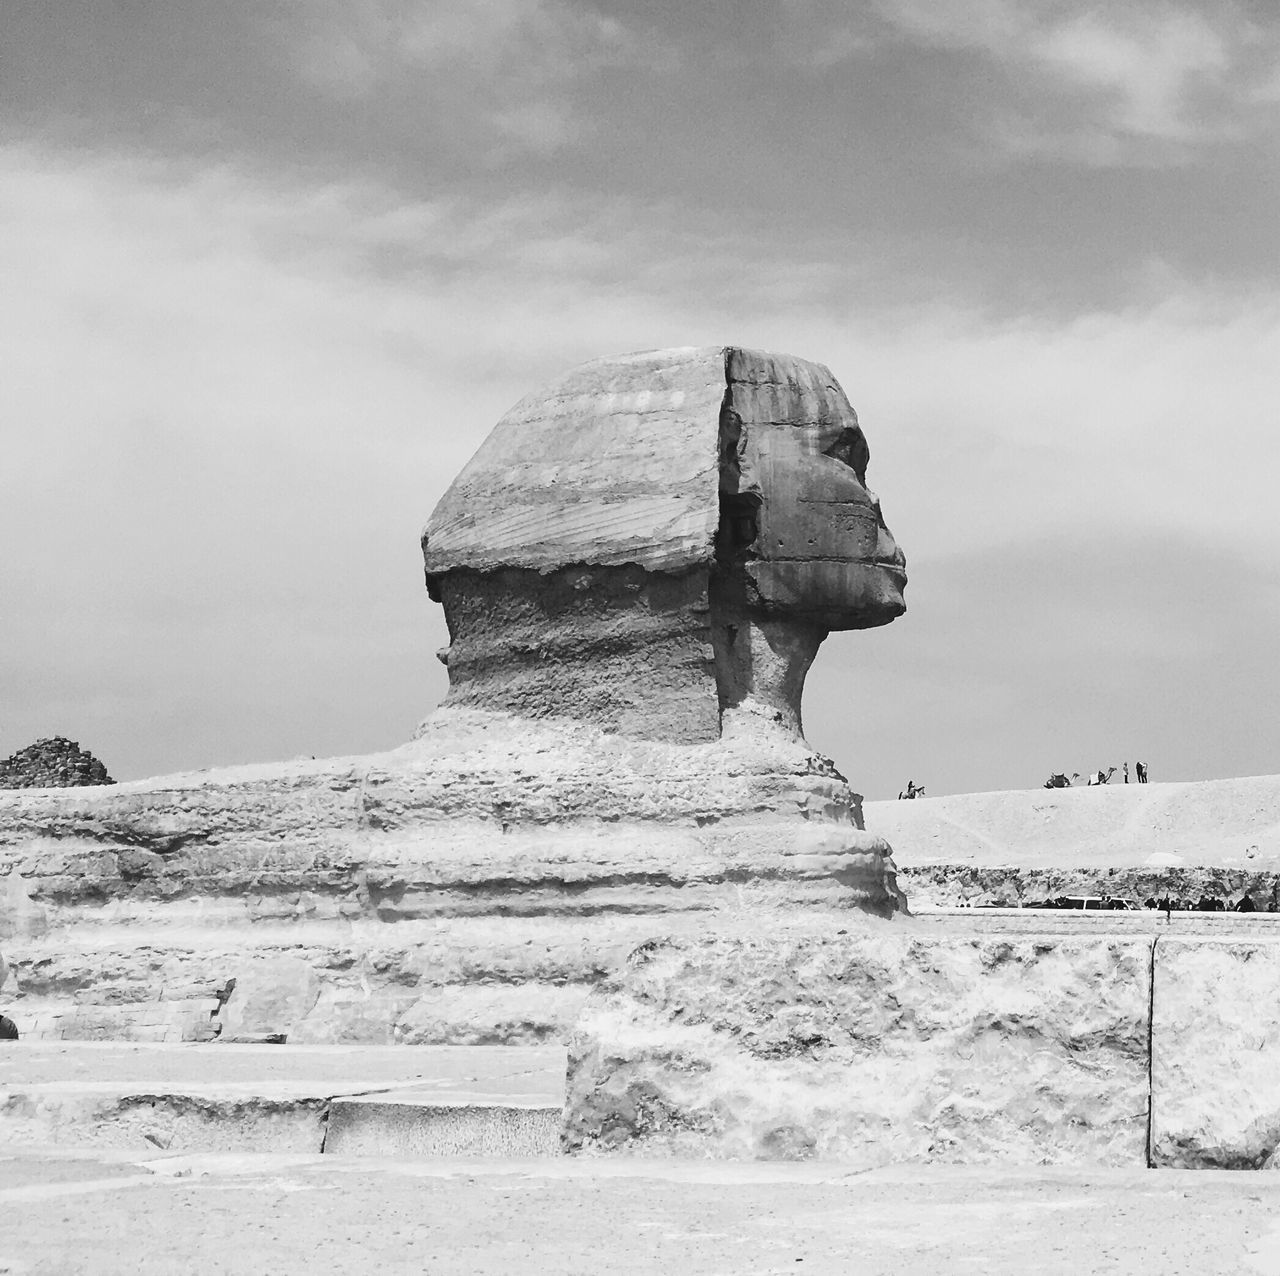 Sky Nature Travel Destinations Outdoors Cloud - Sky No People Day Cold Temperature Beauty In Nature Architecture Quarry Sphynx Ancient Ancient Civilization Ancient History Ancient Egypt Egypt Black And White Blackandwhite History Sphynxofinstagram